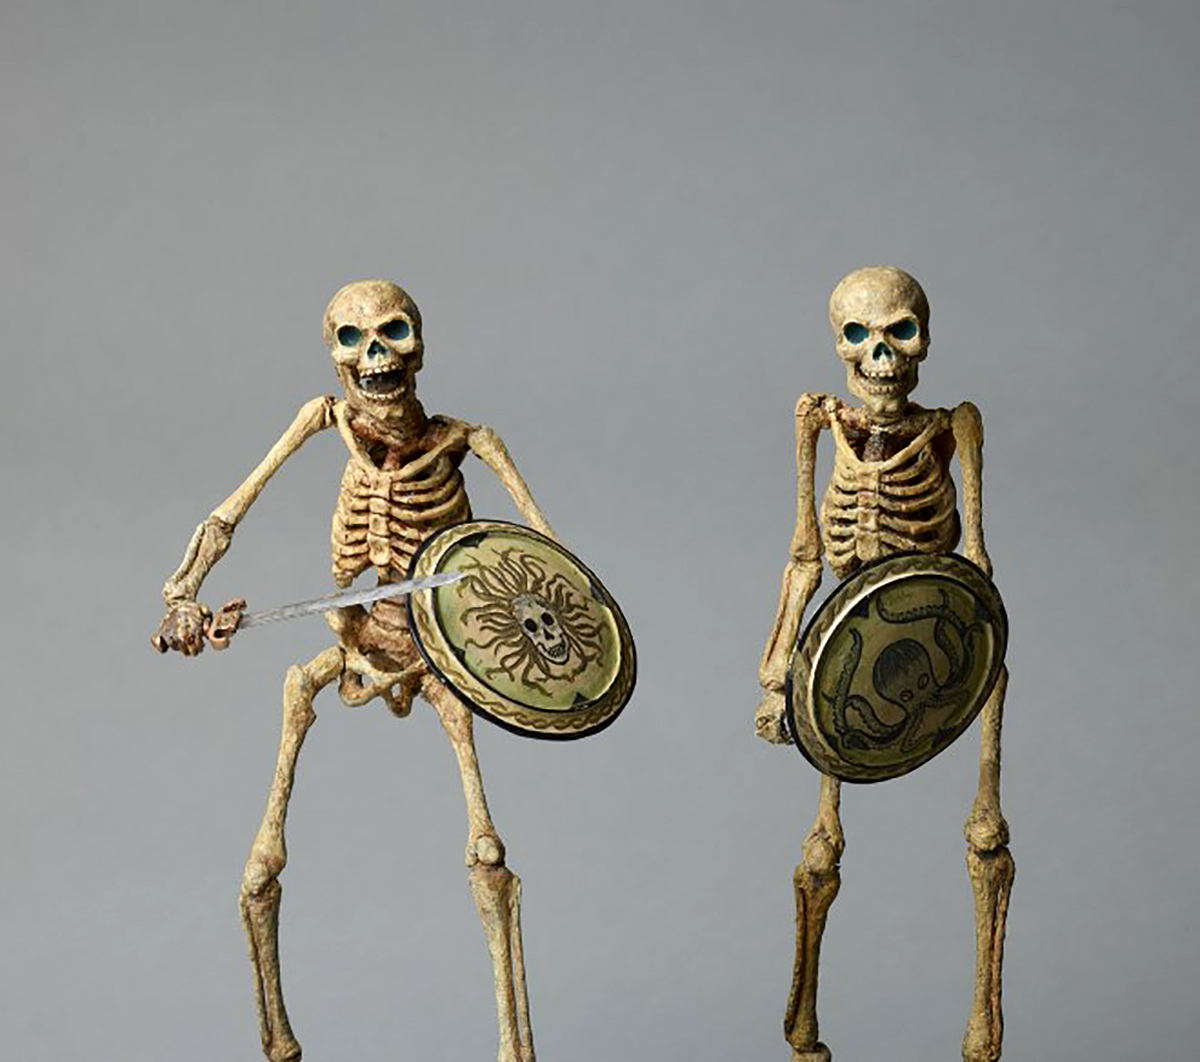 Skeleton model with Medusa shield and Skeleton model with octopus shield from Jason and the Argonauts, (1963),Ray Harryhausen © The Ray and Diana Harryhausen Foundation ;Collection: The Ray and Diana Harryhausen Foundation (Charity No. SC001419)